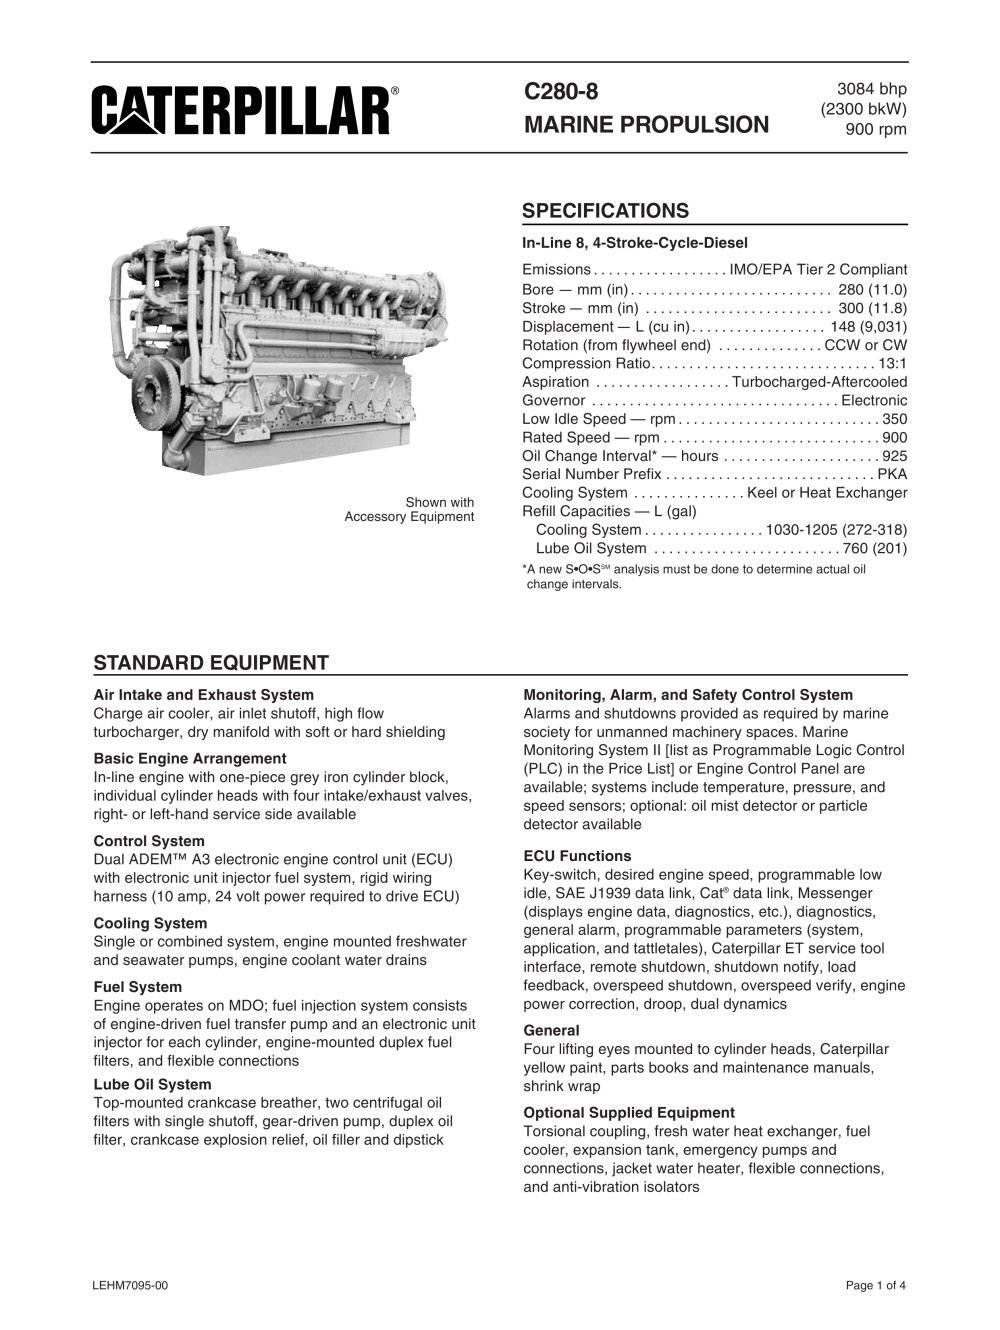 ... cat c280 8 spec sheets caterpillar marine power systems pdf Wire Harness  Assembly Equipment cat c280